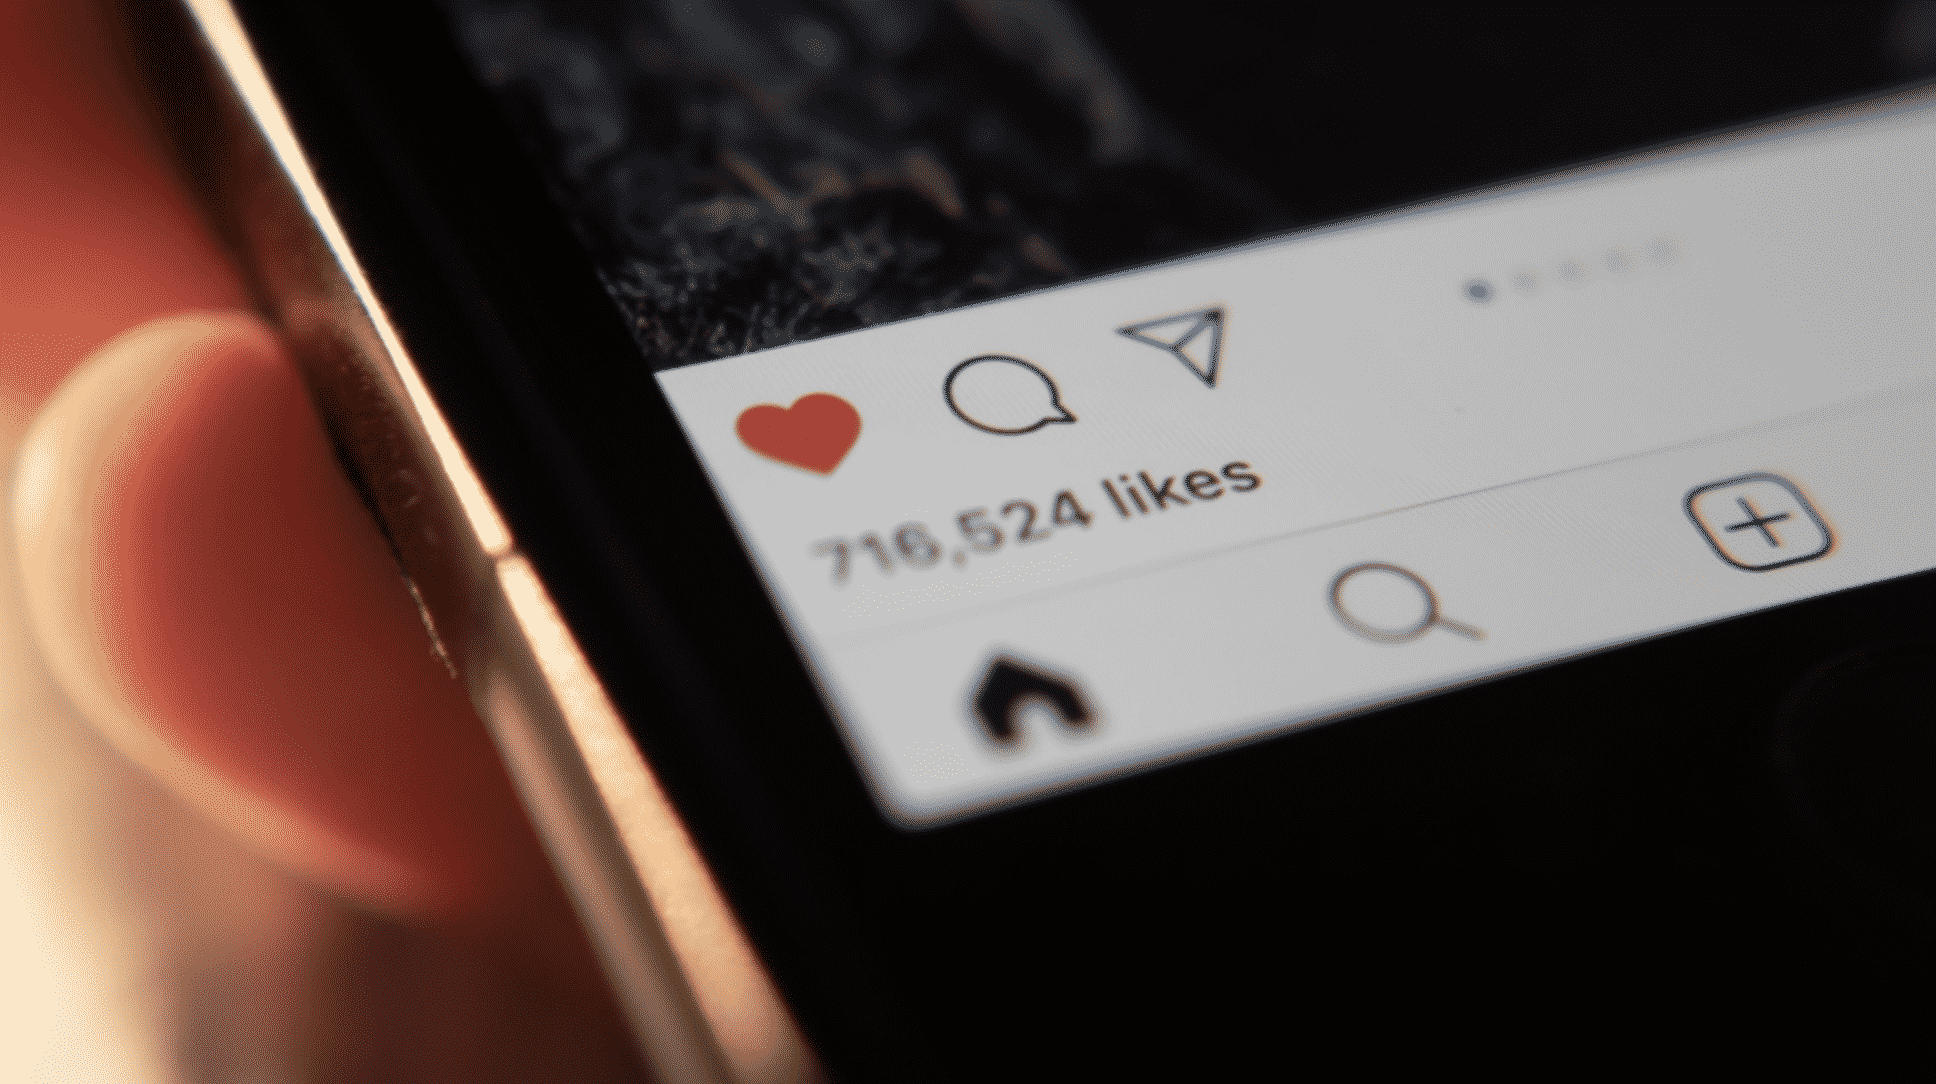 Instagram introduces a new feature that lets you hide likes on posts